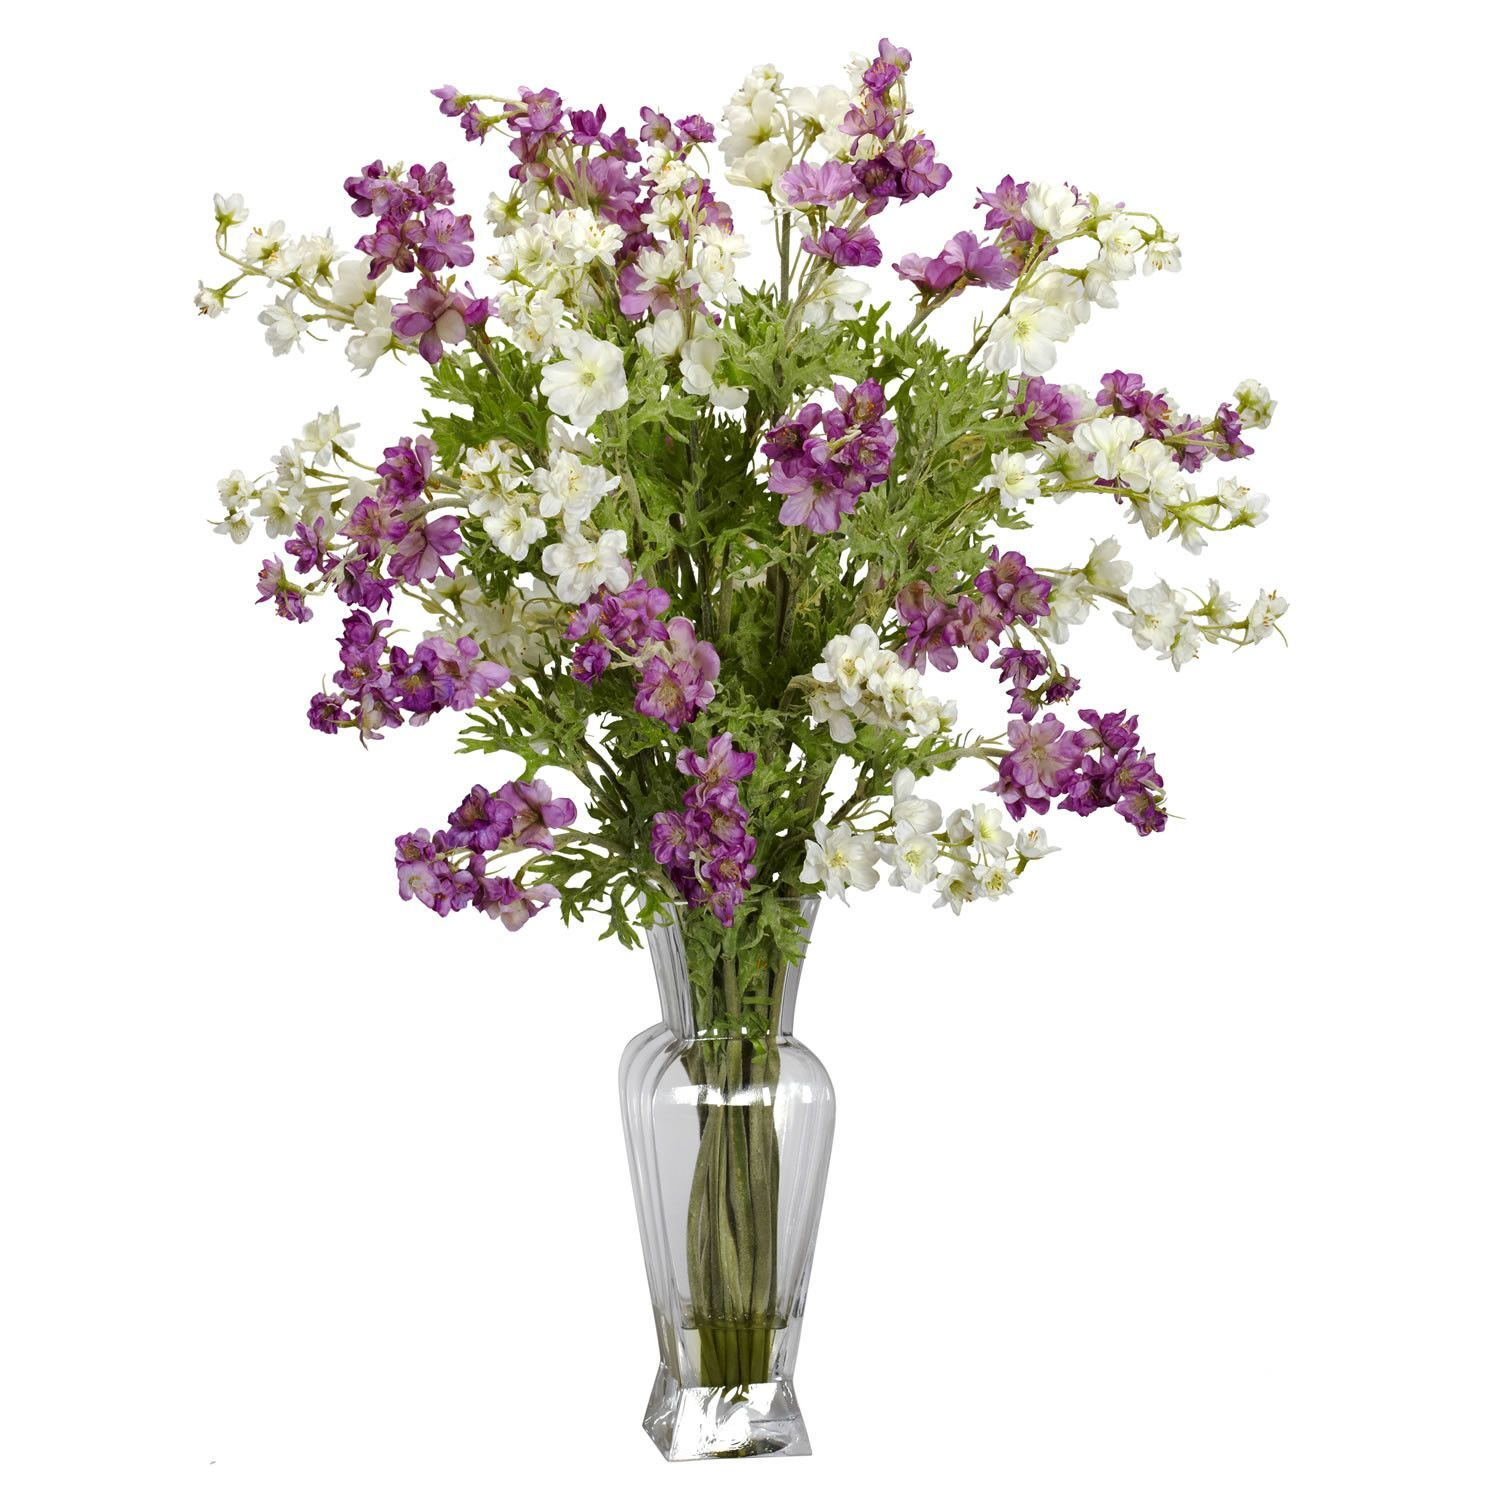 Dancing Daisy Silk Flowers With Vase Products Pinterest Silk